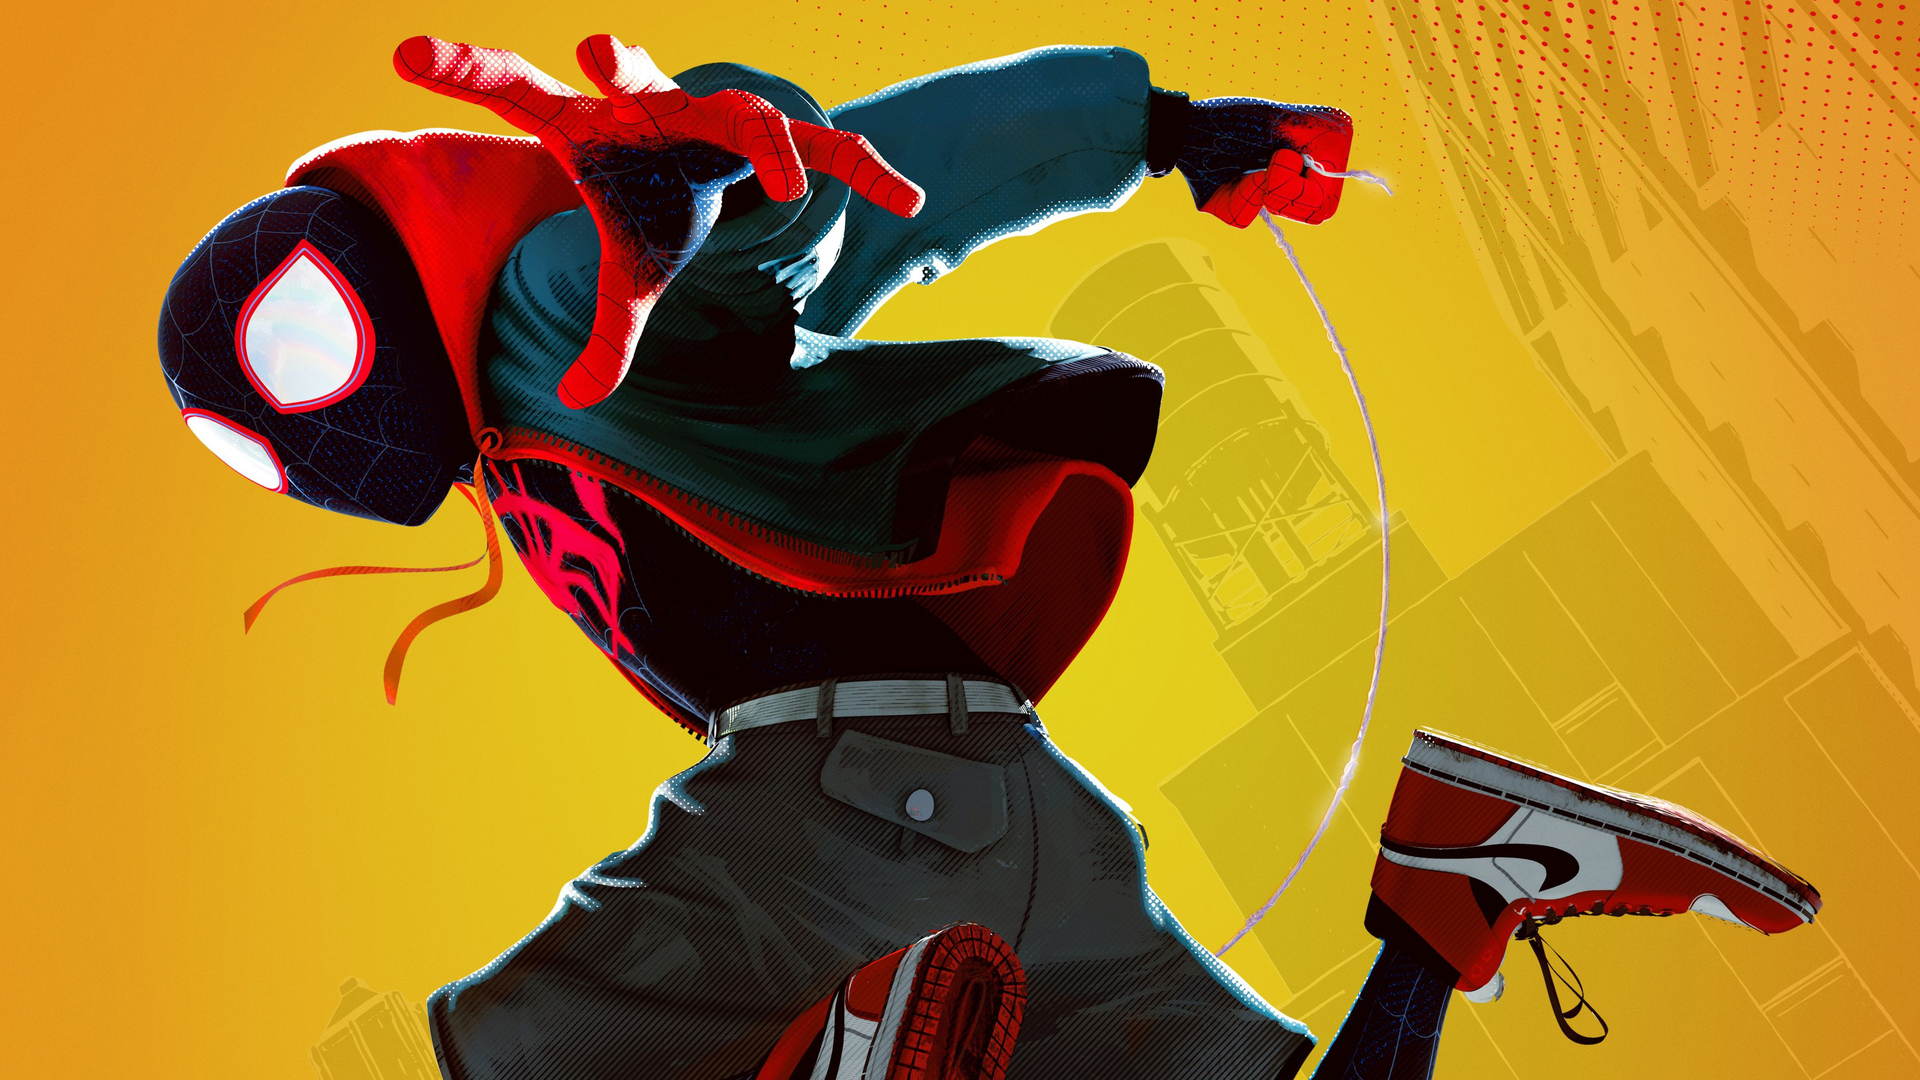 Miles Morales in Spiderman: Into the Spiderverse